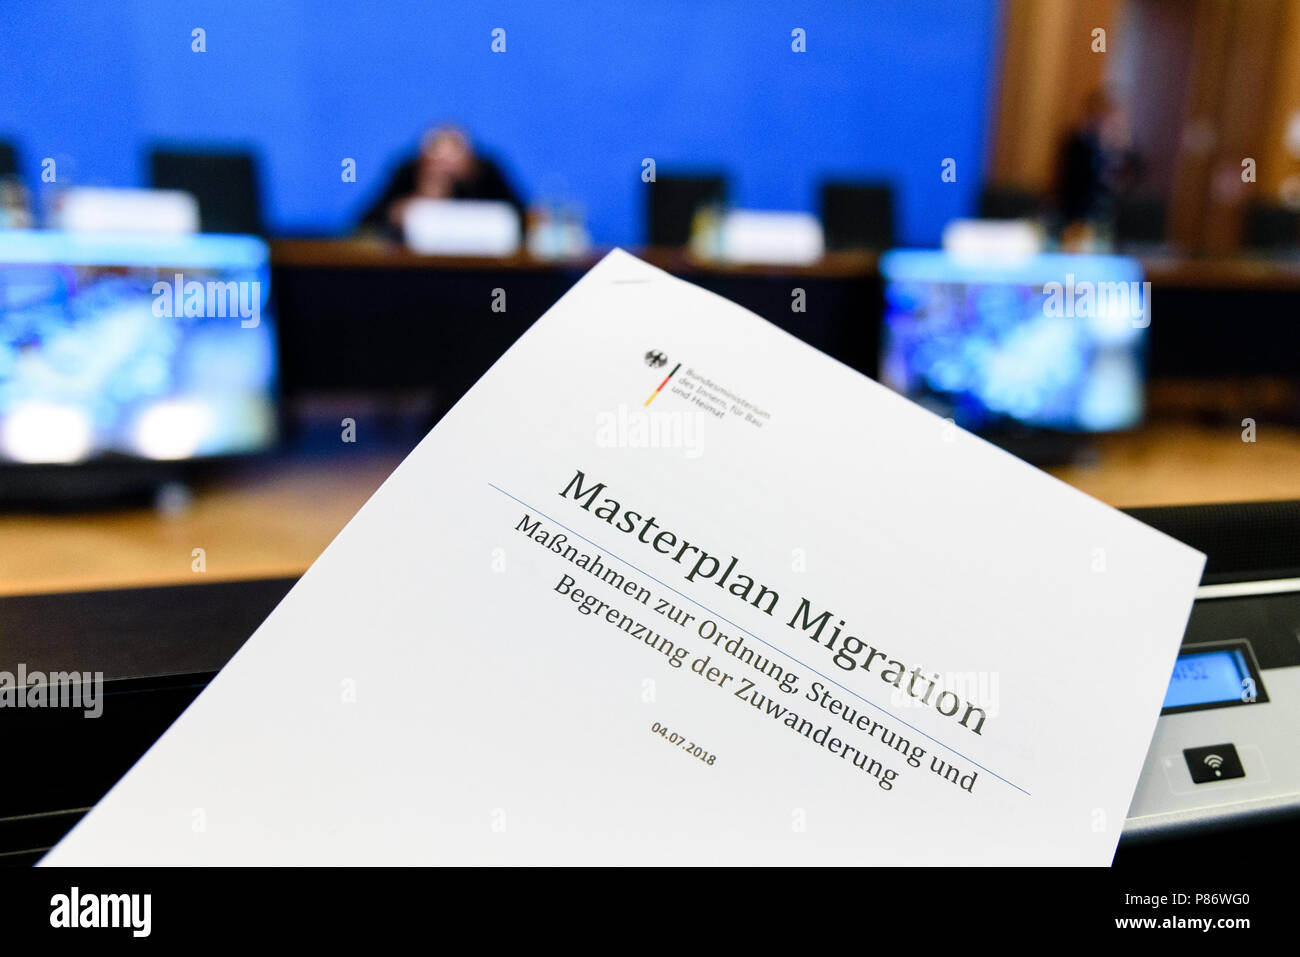 A Copy of the 'Masterplan Migration' during the presentation of the 'Masterplan Migration - Measures to Organize, Control and Limit Immigration.' The plan includes stopping and rejecting migrants who are already registered in other EU countries at the German border. - Stock Image